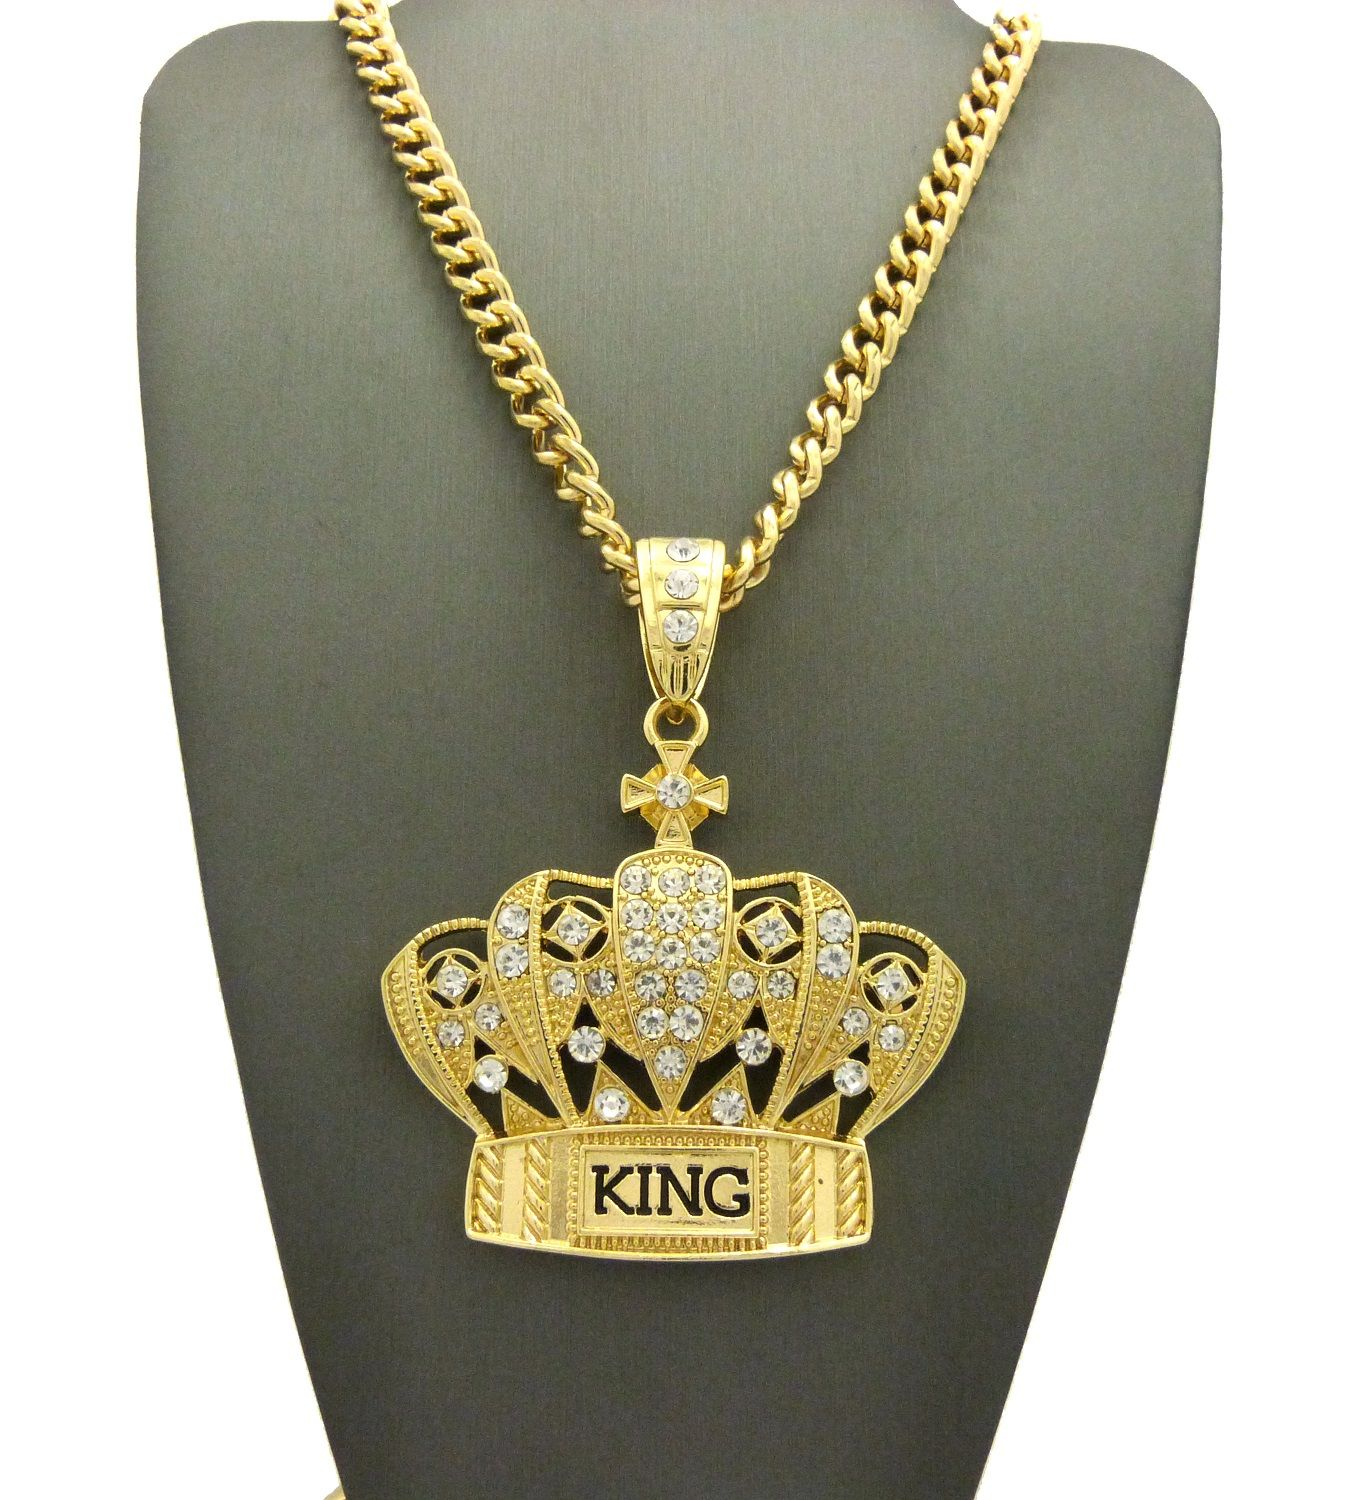 New iced out king crown pendant   36